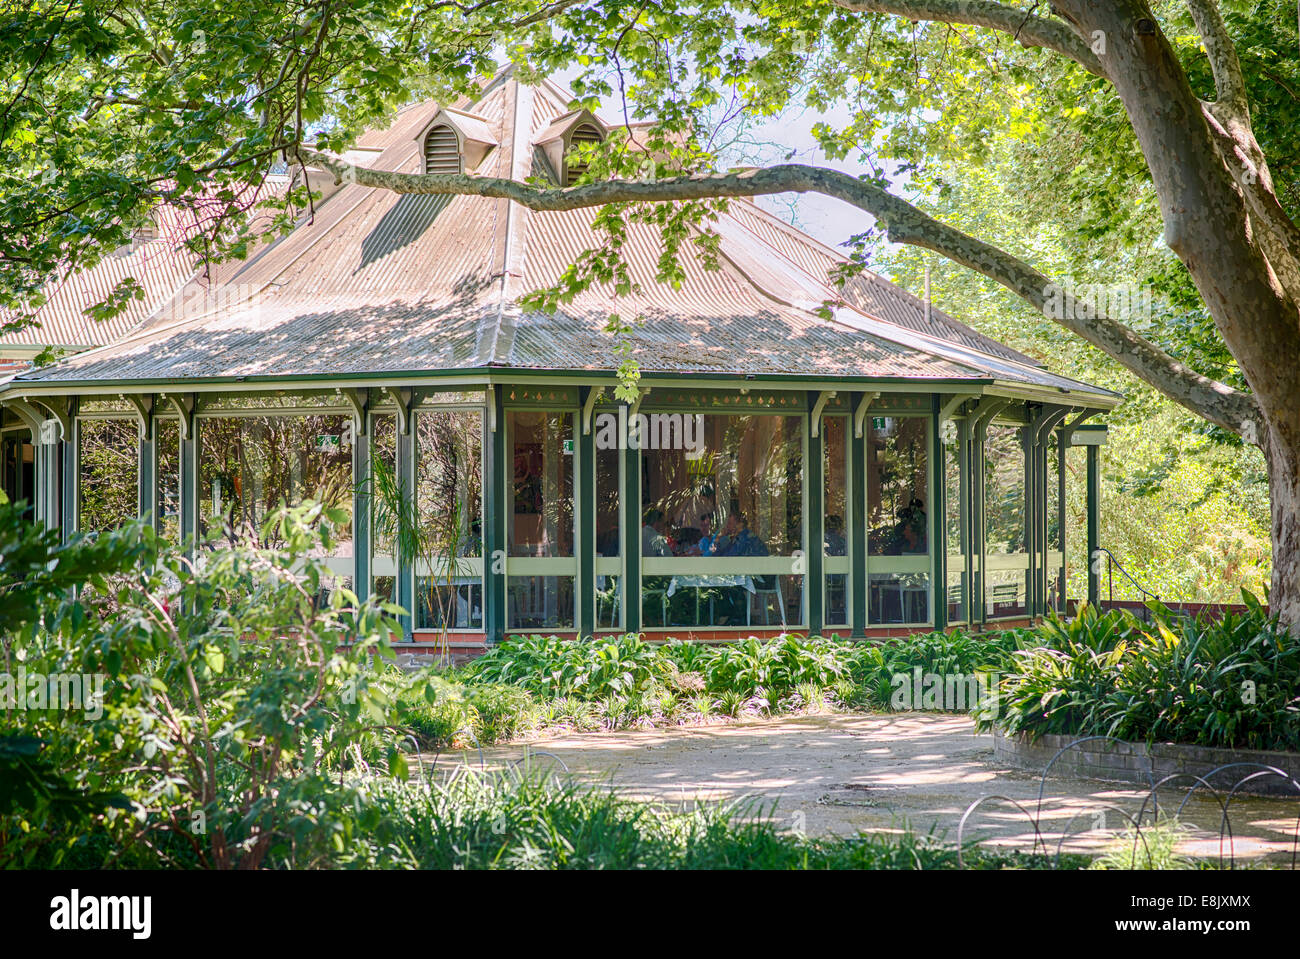 The Adelaide Botanic Gardens Restaurant And Cafe South Australia